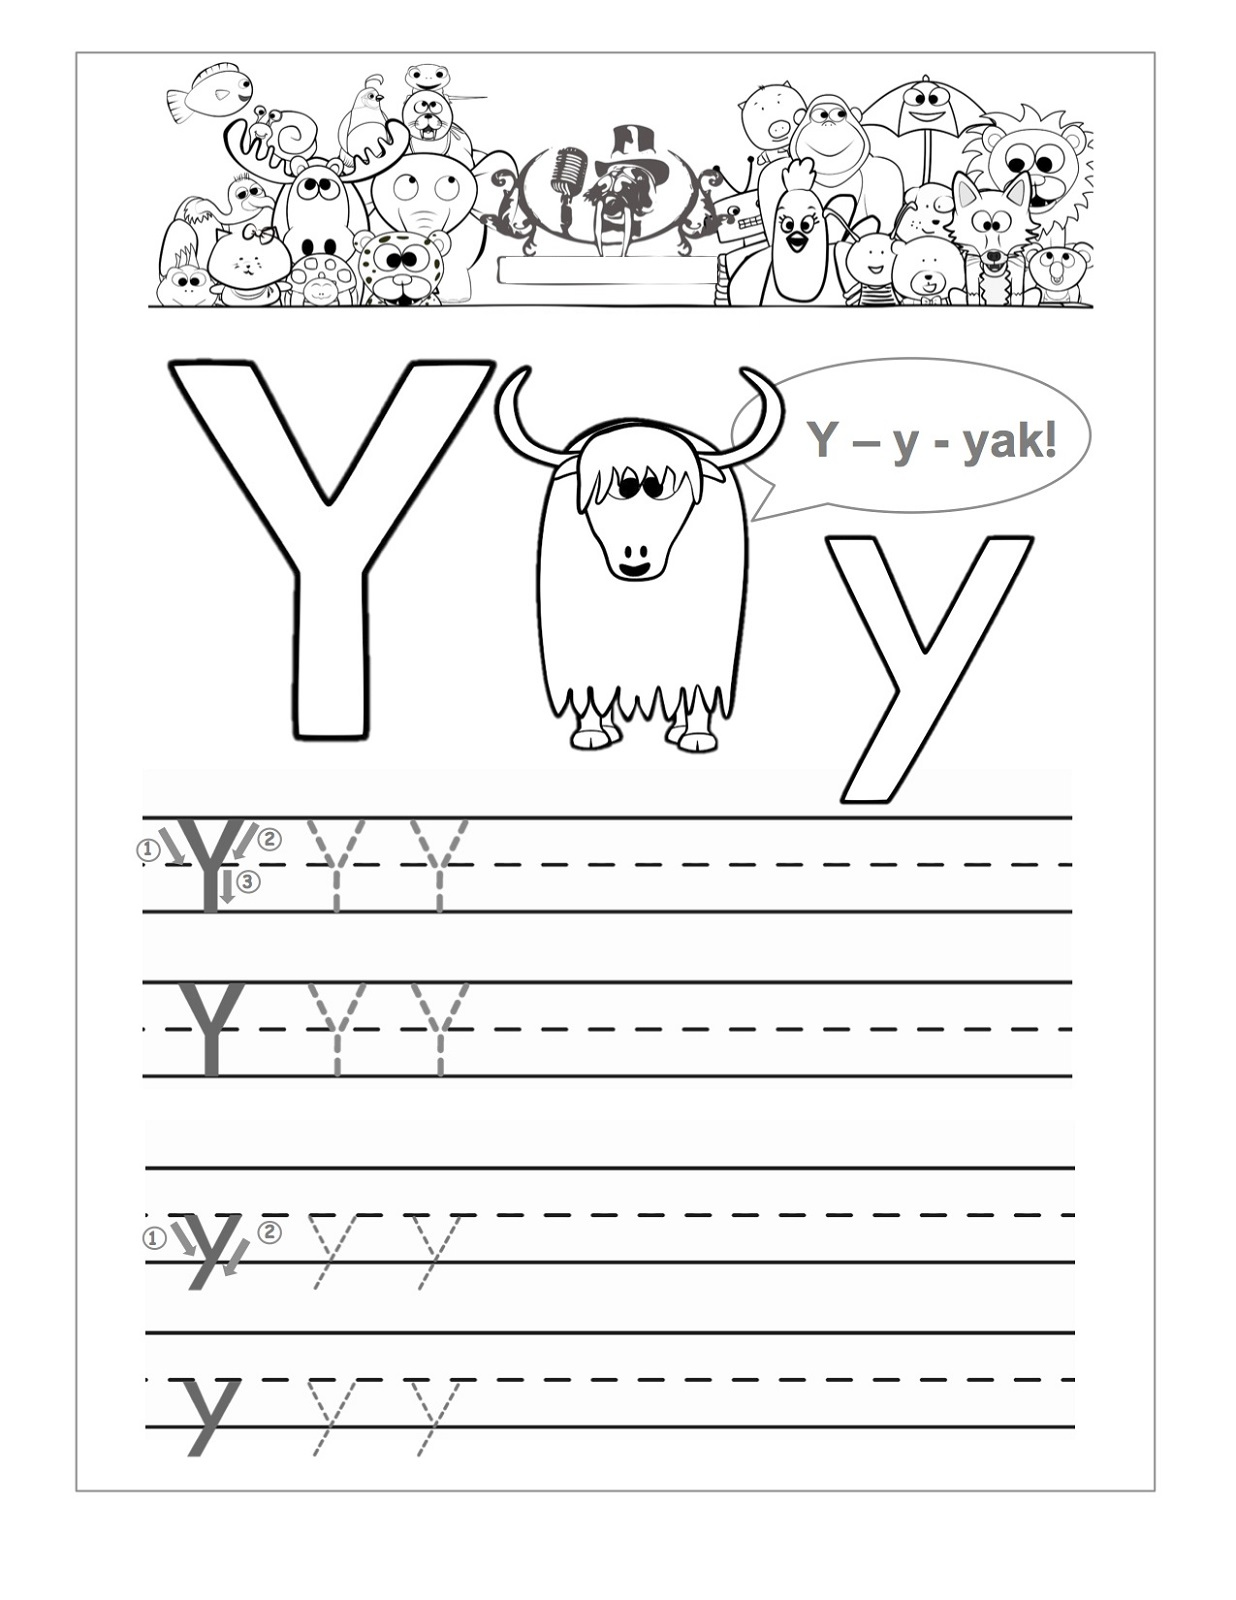 Worksheet Letter Y Worksheets Worksheet Fun Worksheet